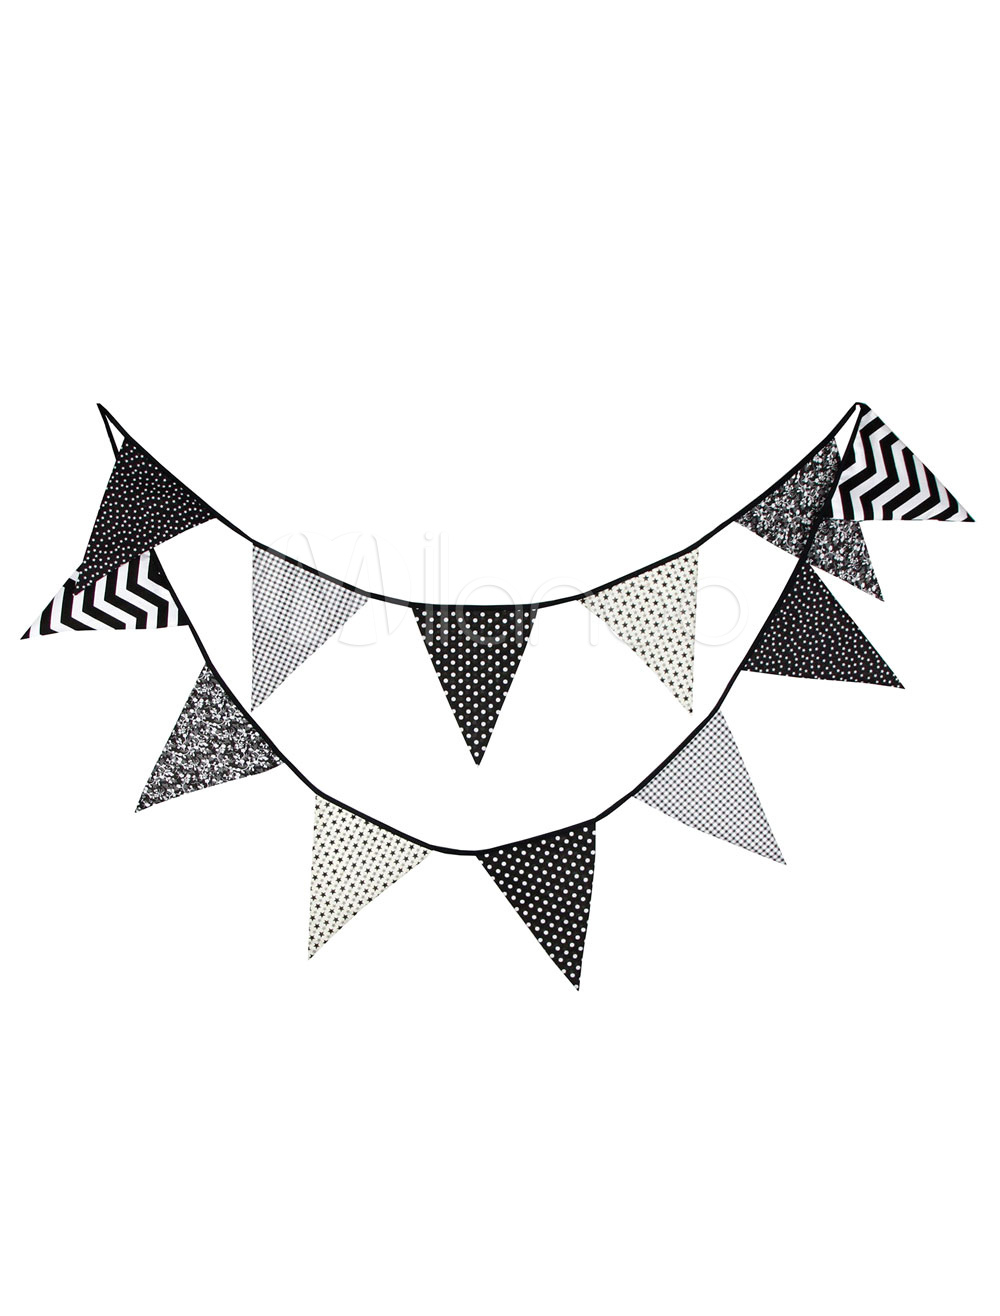 Wedding Banner Flags Clipart Black Triangle Bunting Decorations.